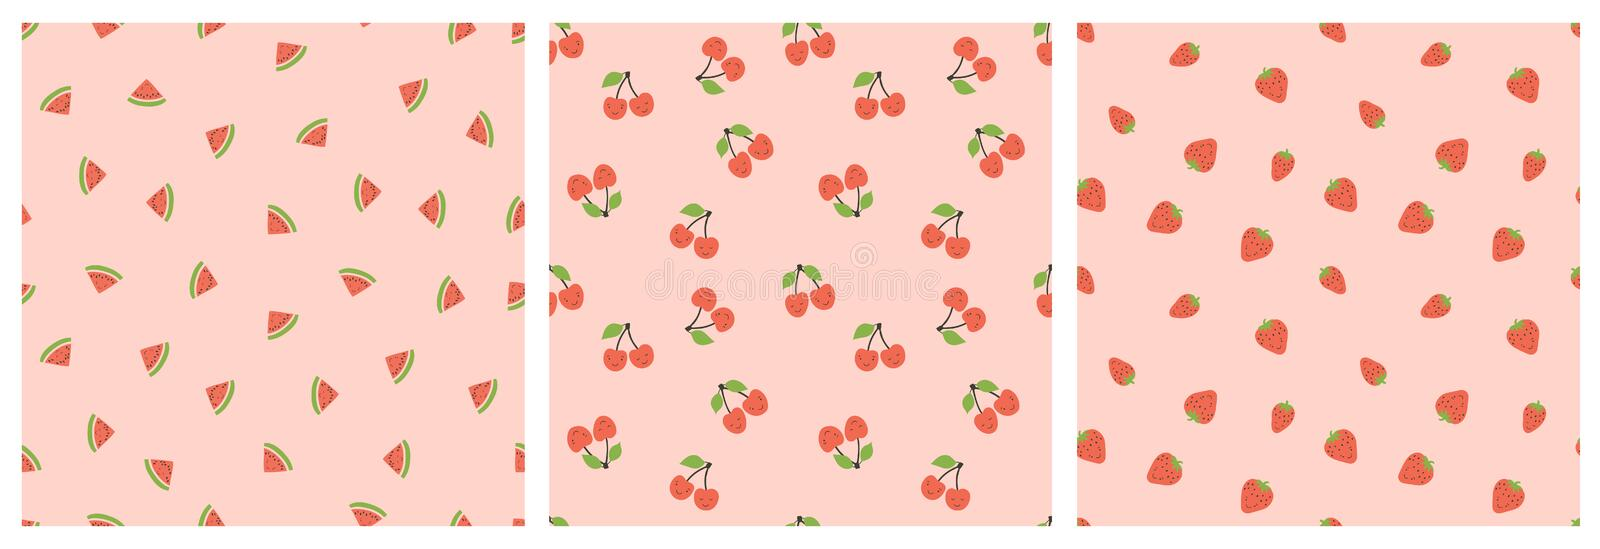 Kid`s seamless pattern. Smiling watermelon, cherry and strawberry. Exotic fruit fashion print. Design elements for baby textile o royalty free illustration